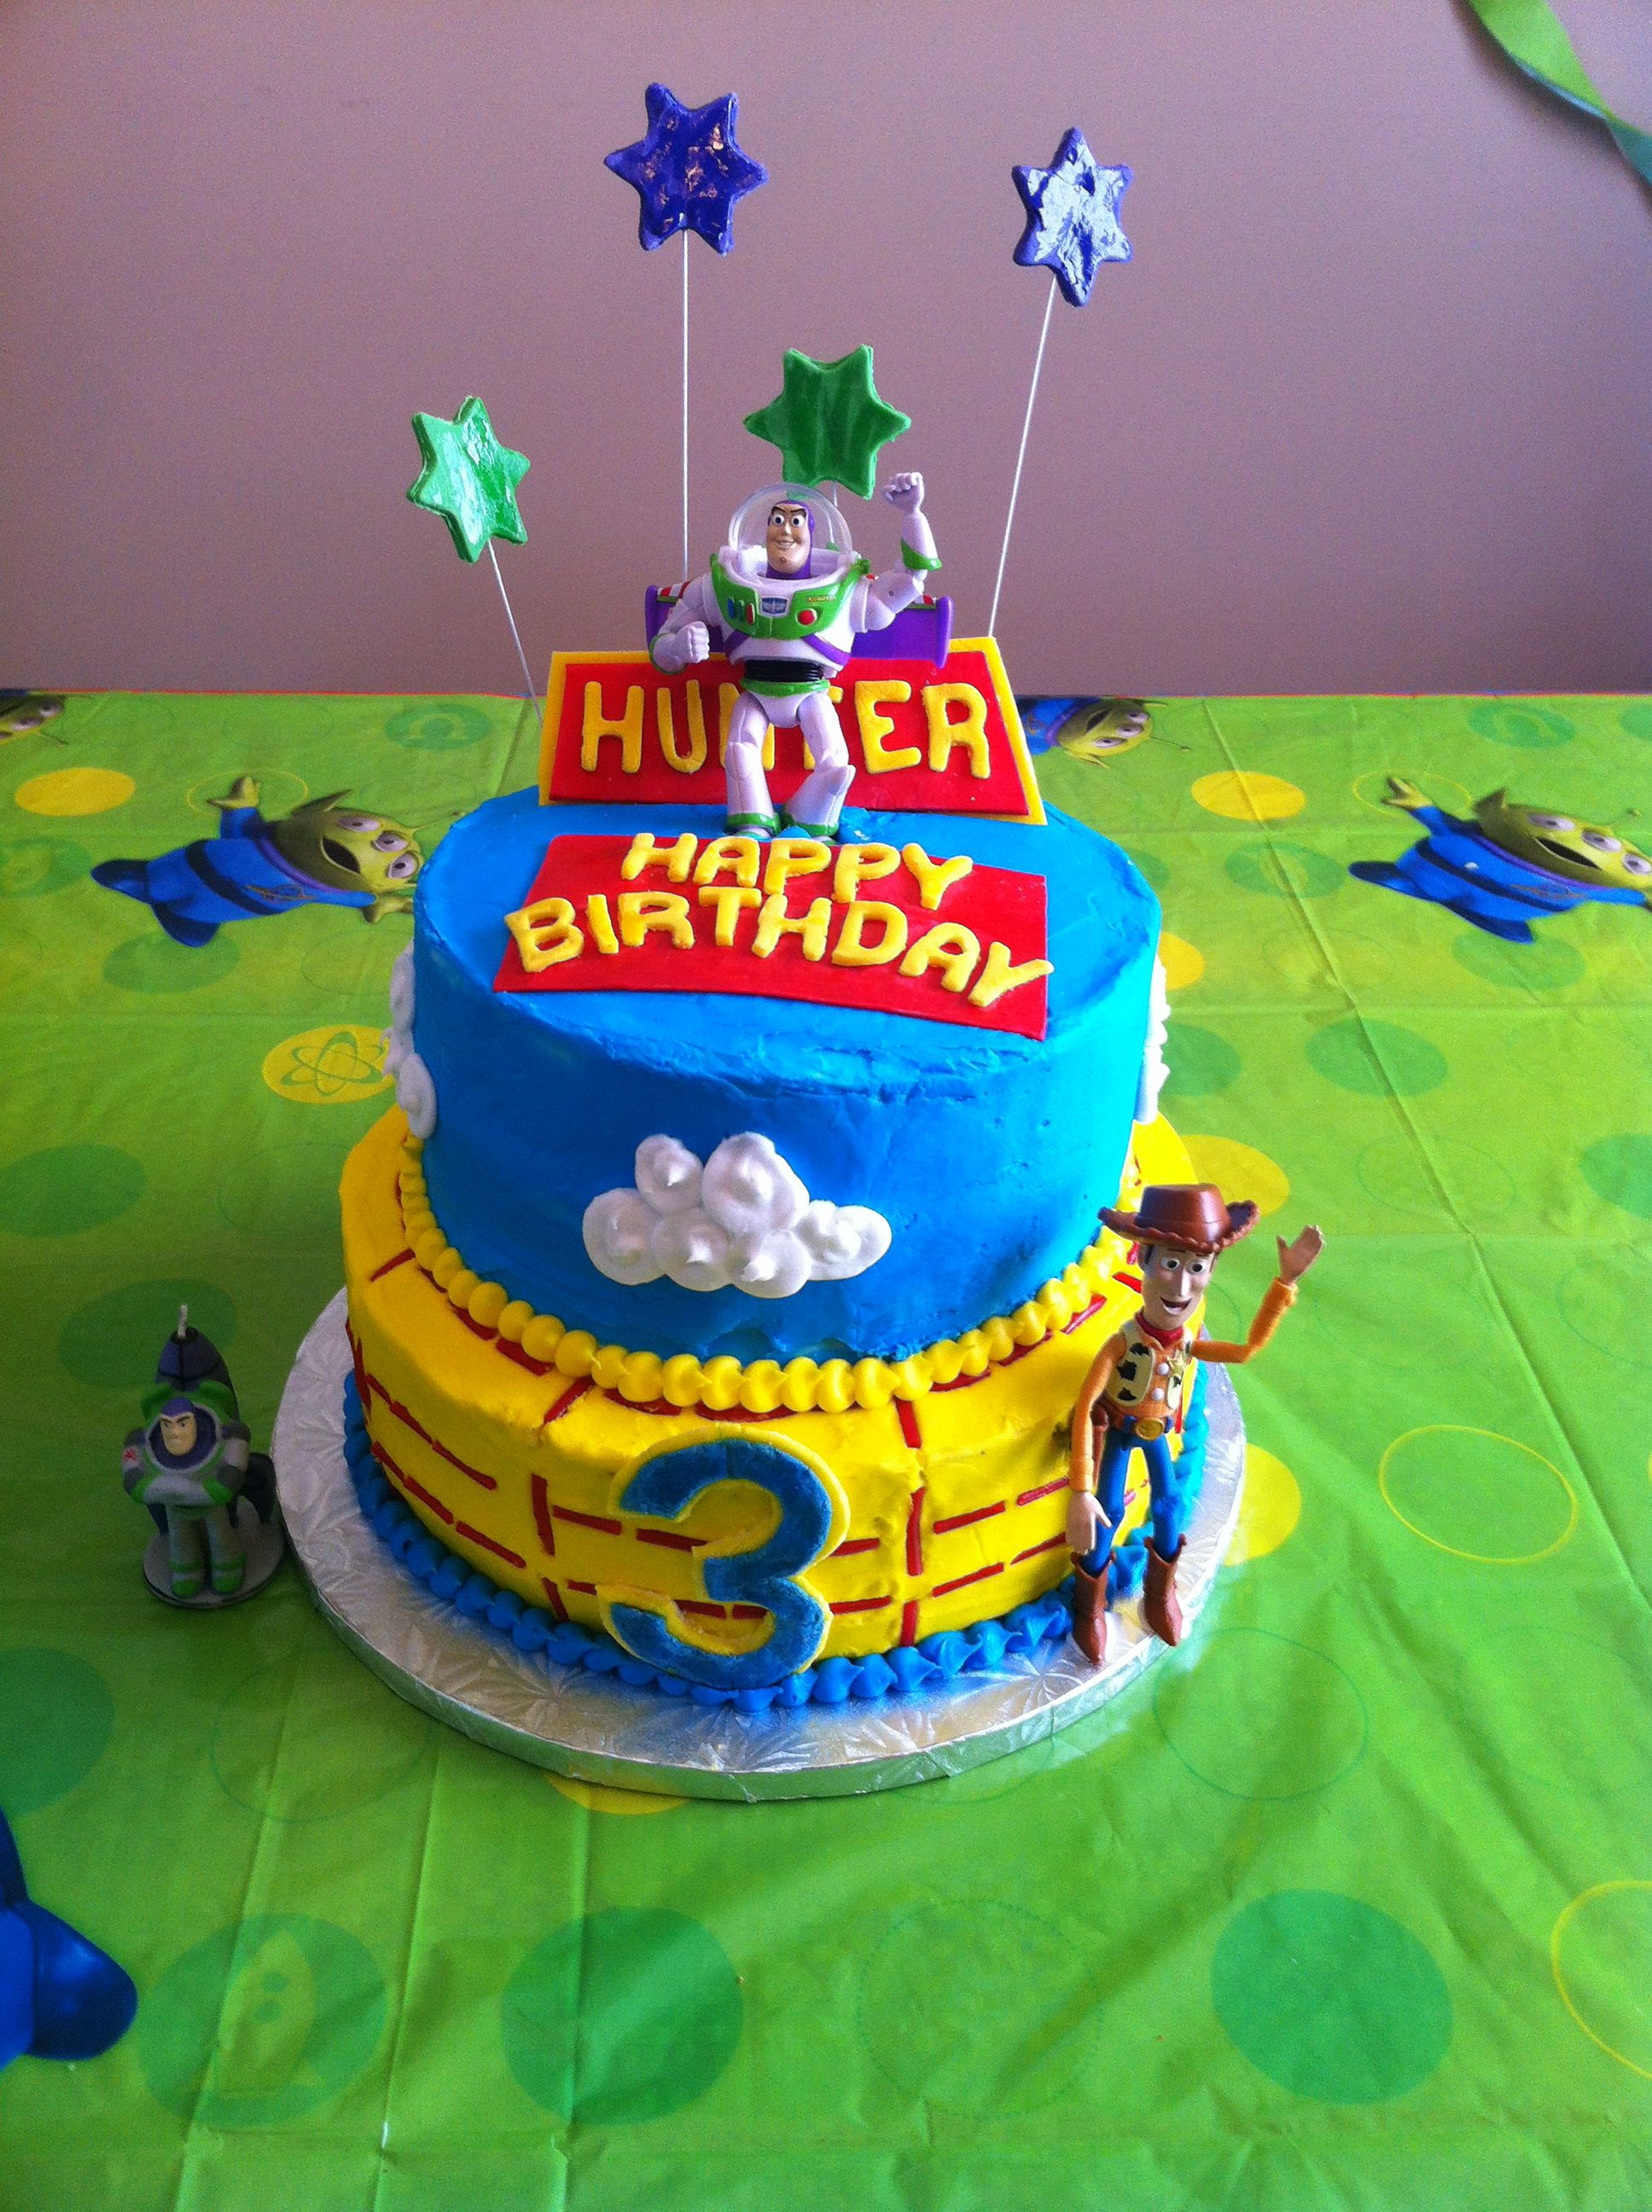 Toy Story Cake Two Tiered Cake Using Buttercream To